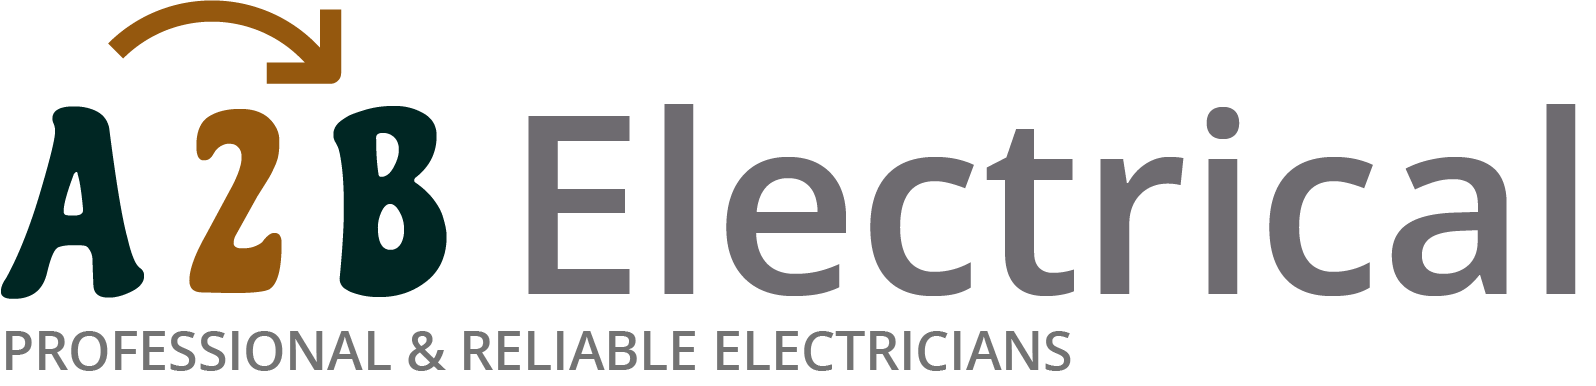 If you have electrical wiring problems in North Finchley, we can provide an electrician to have a look for you.